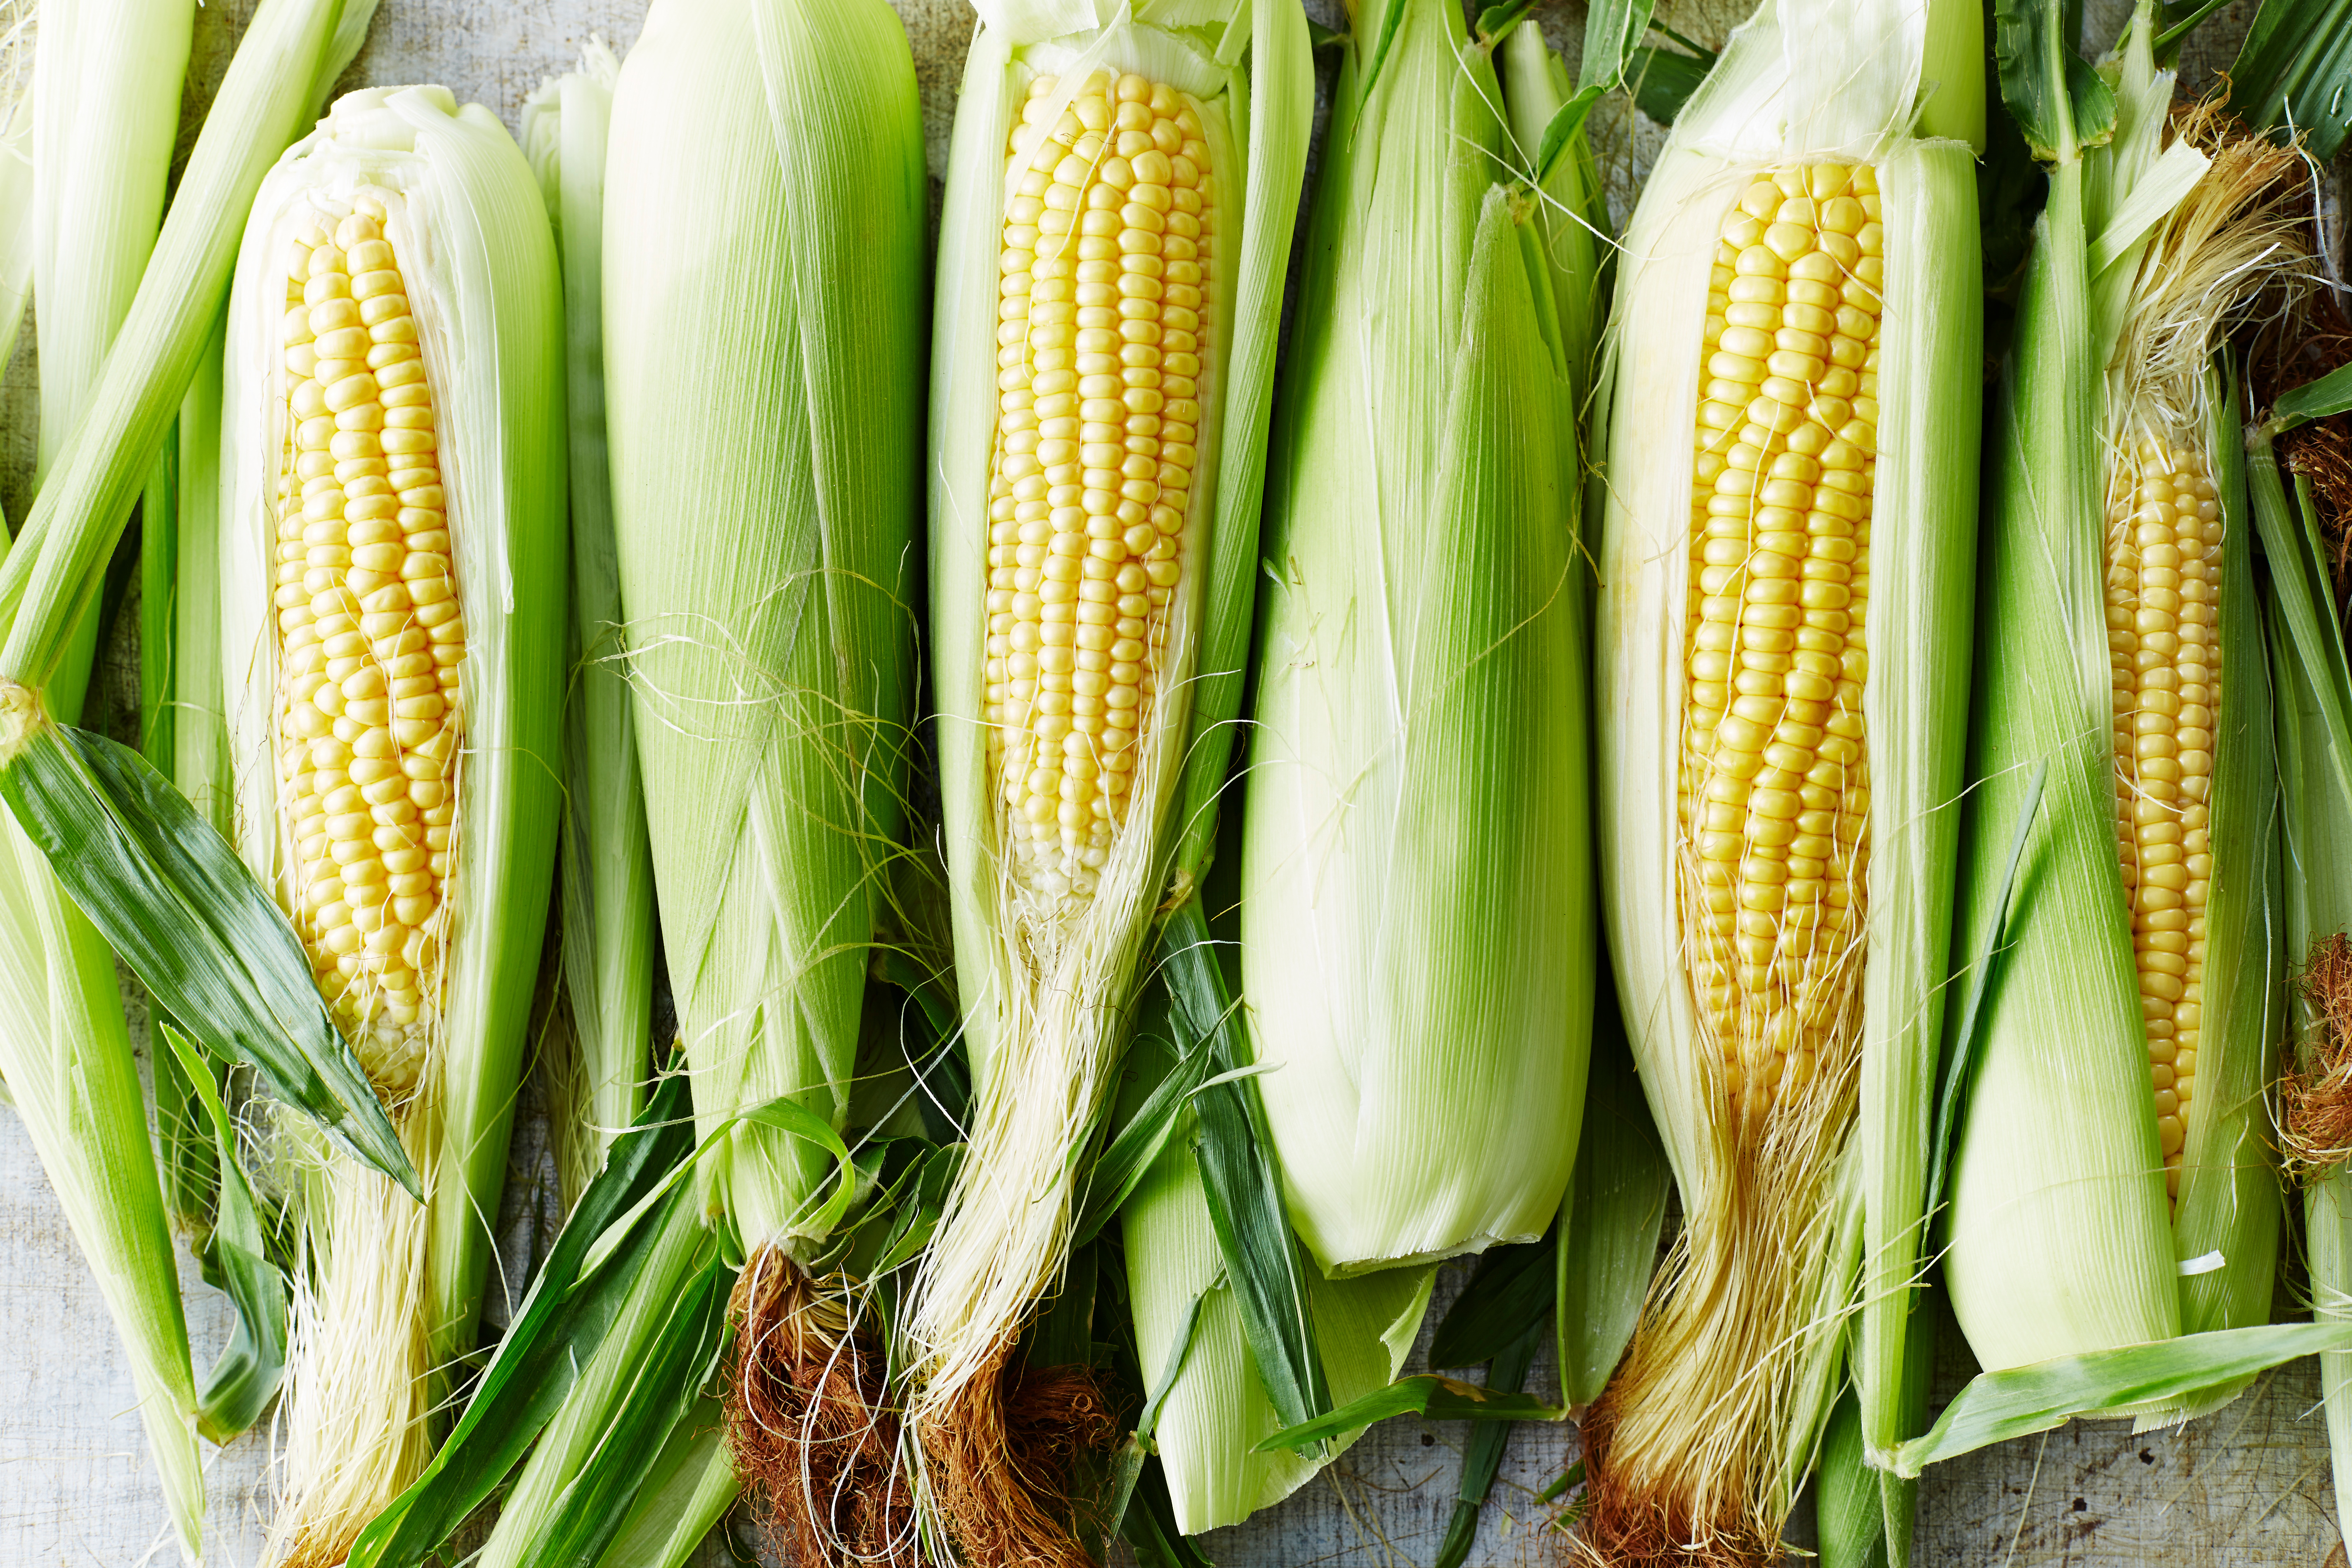 How To Microwave Corn On The Cob So It